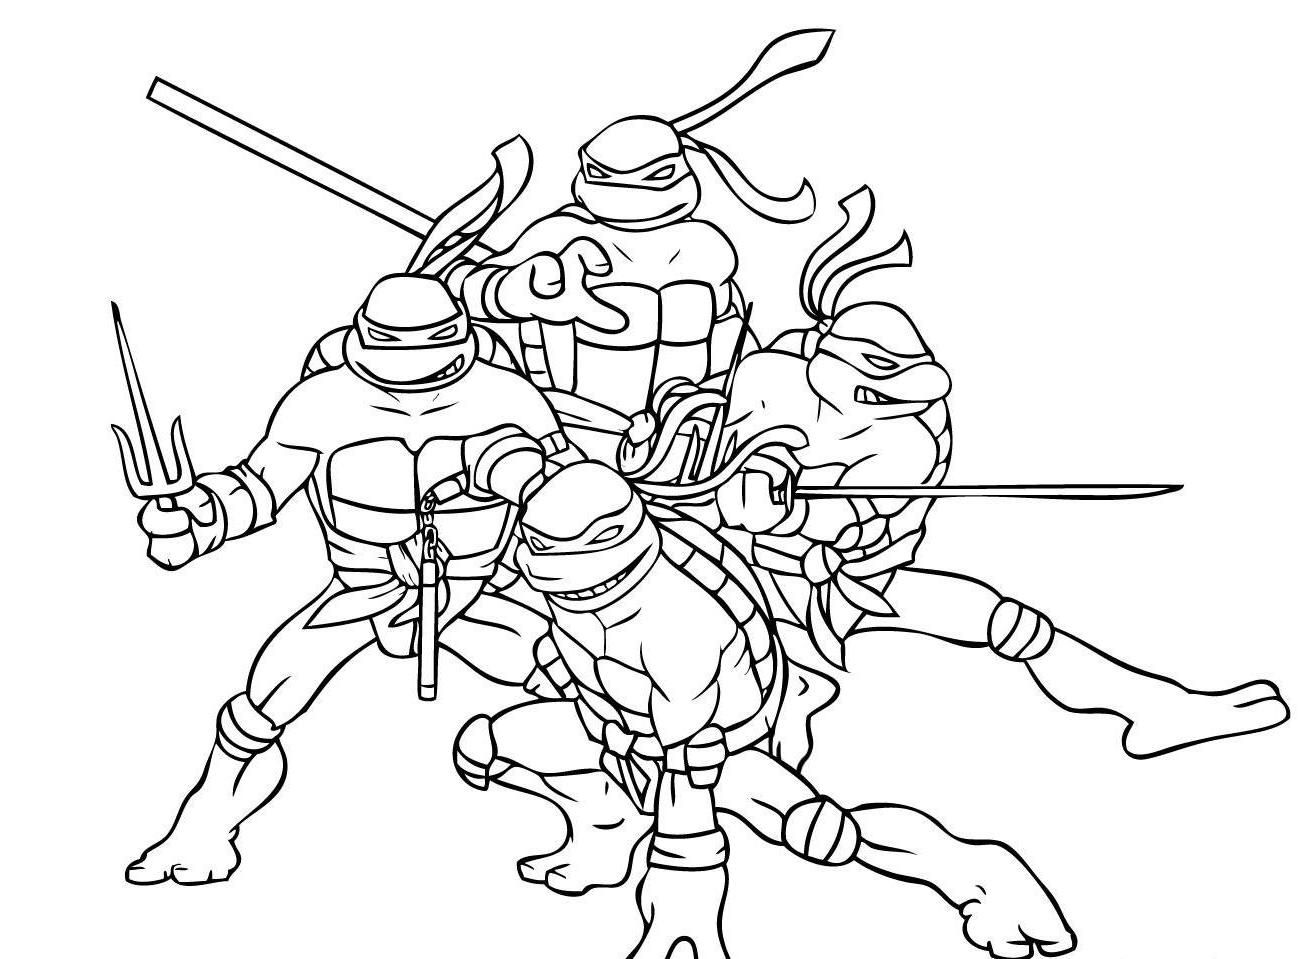 Ninja turtles printable coloring pages for kids and for for Ninja coloring pages for adults